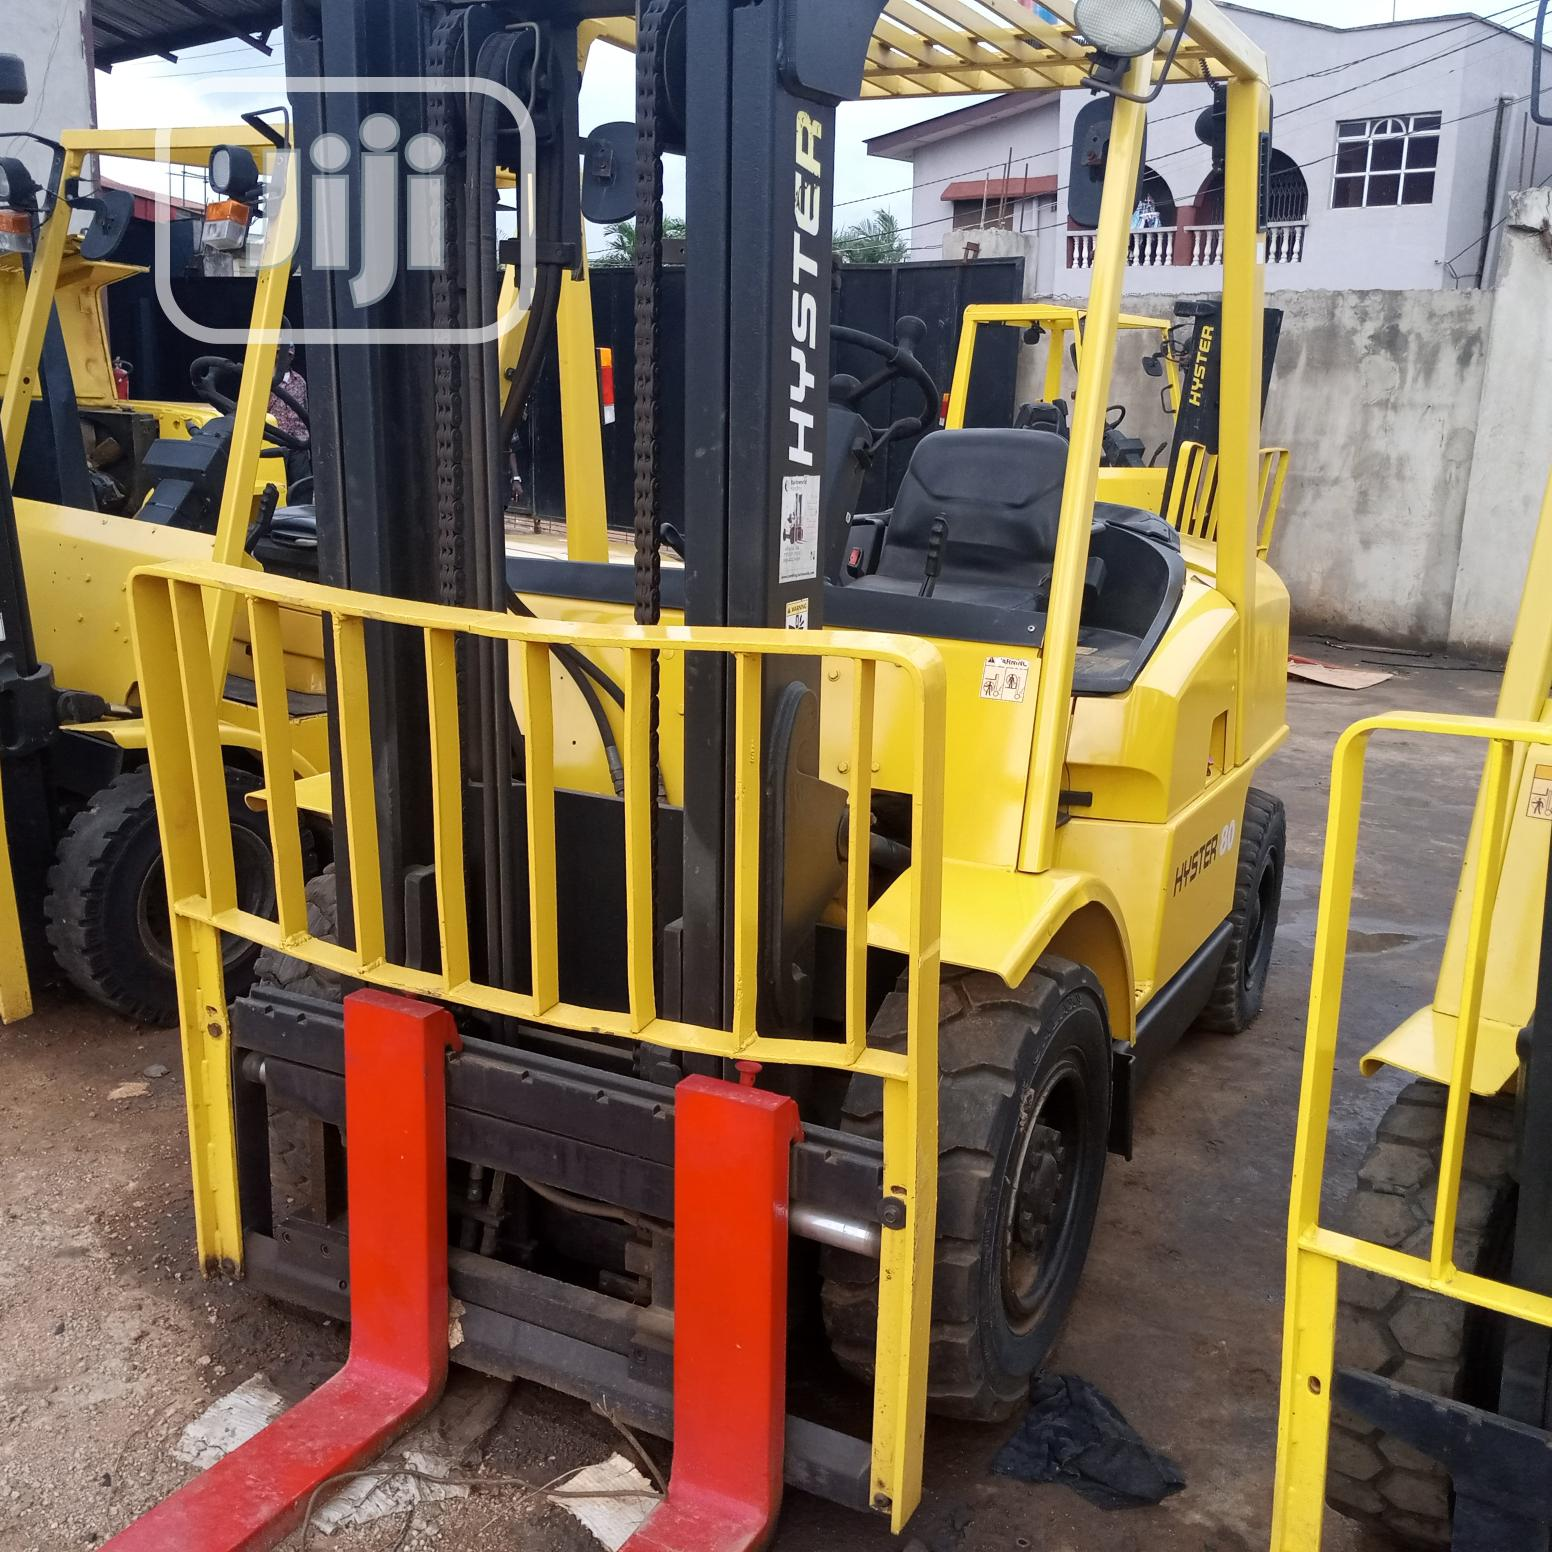 Archive: 3.7 Tonnes Forklift Well Mainatained And 100% Efficient